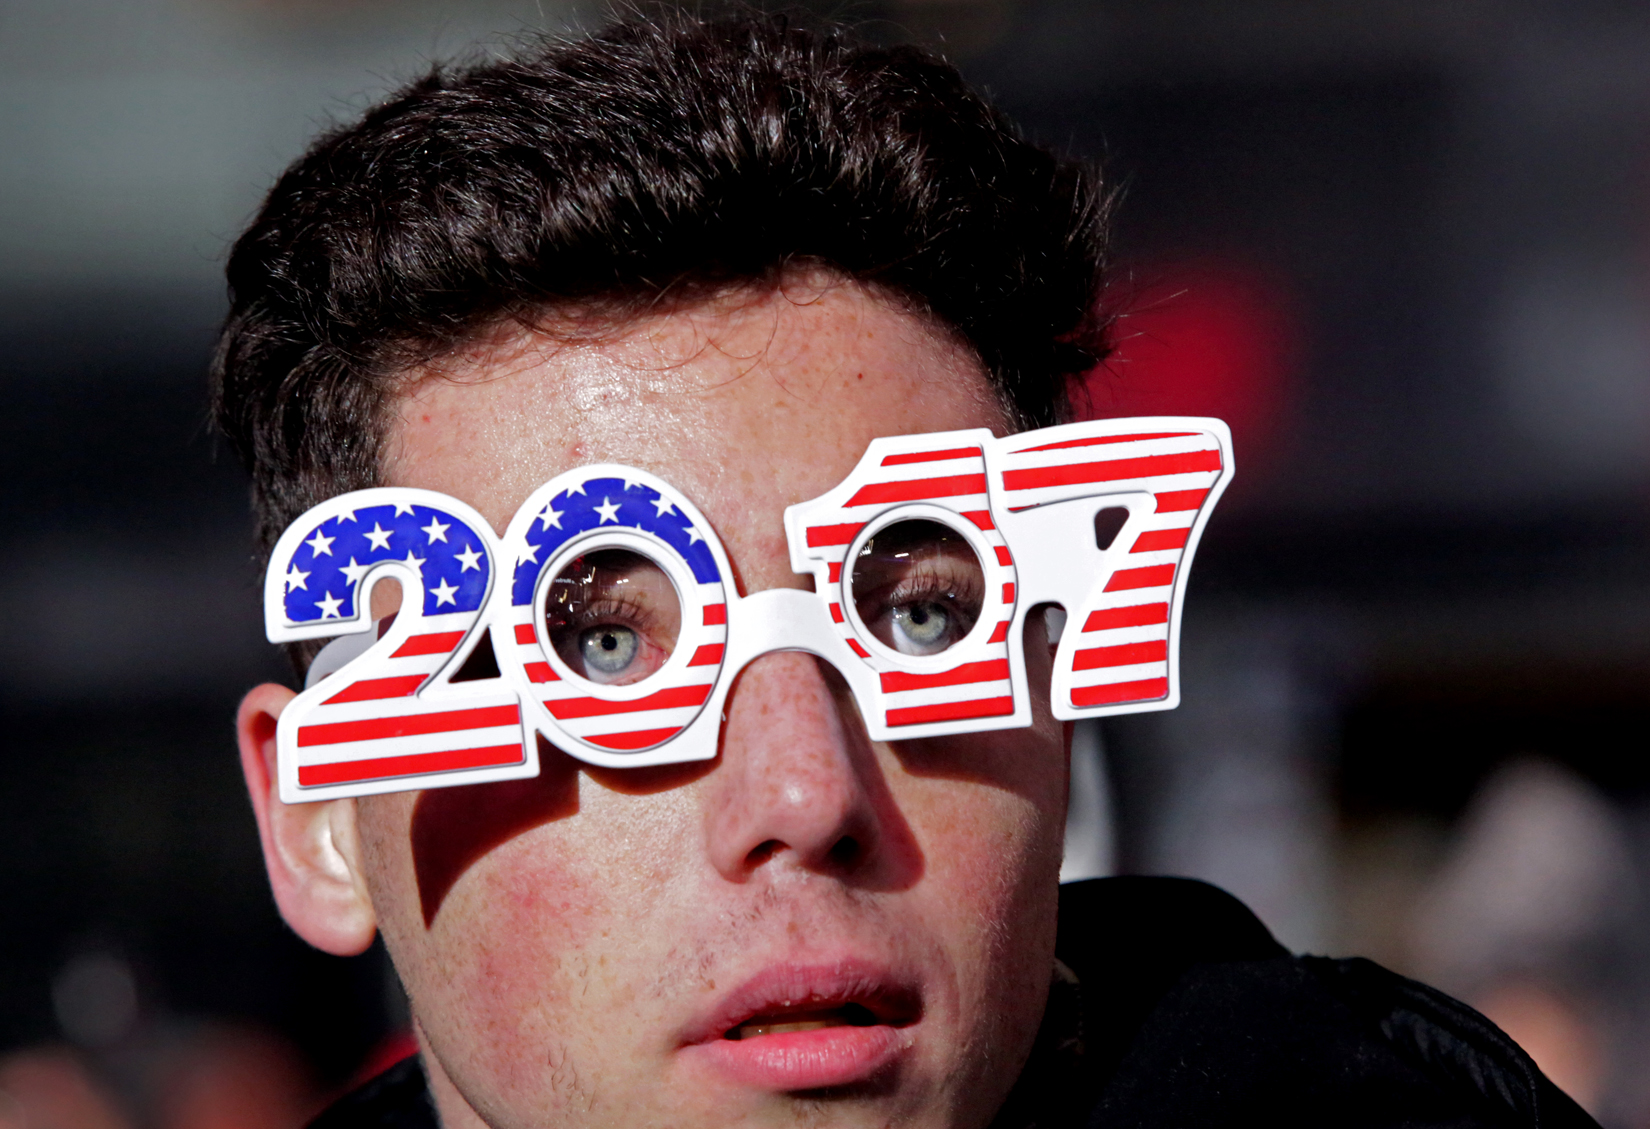 A man peers out from his glasses as people congregate in the lead-up to New Year's eve celebrations in Times Square in New York, NY on December 31, 2016.